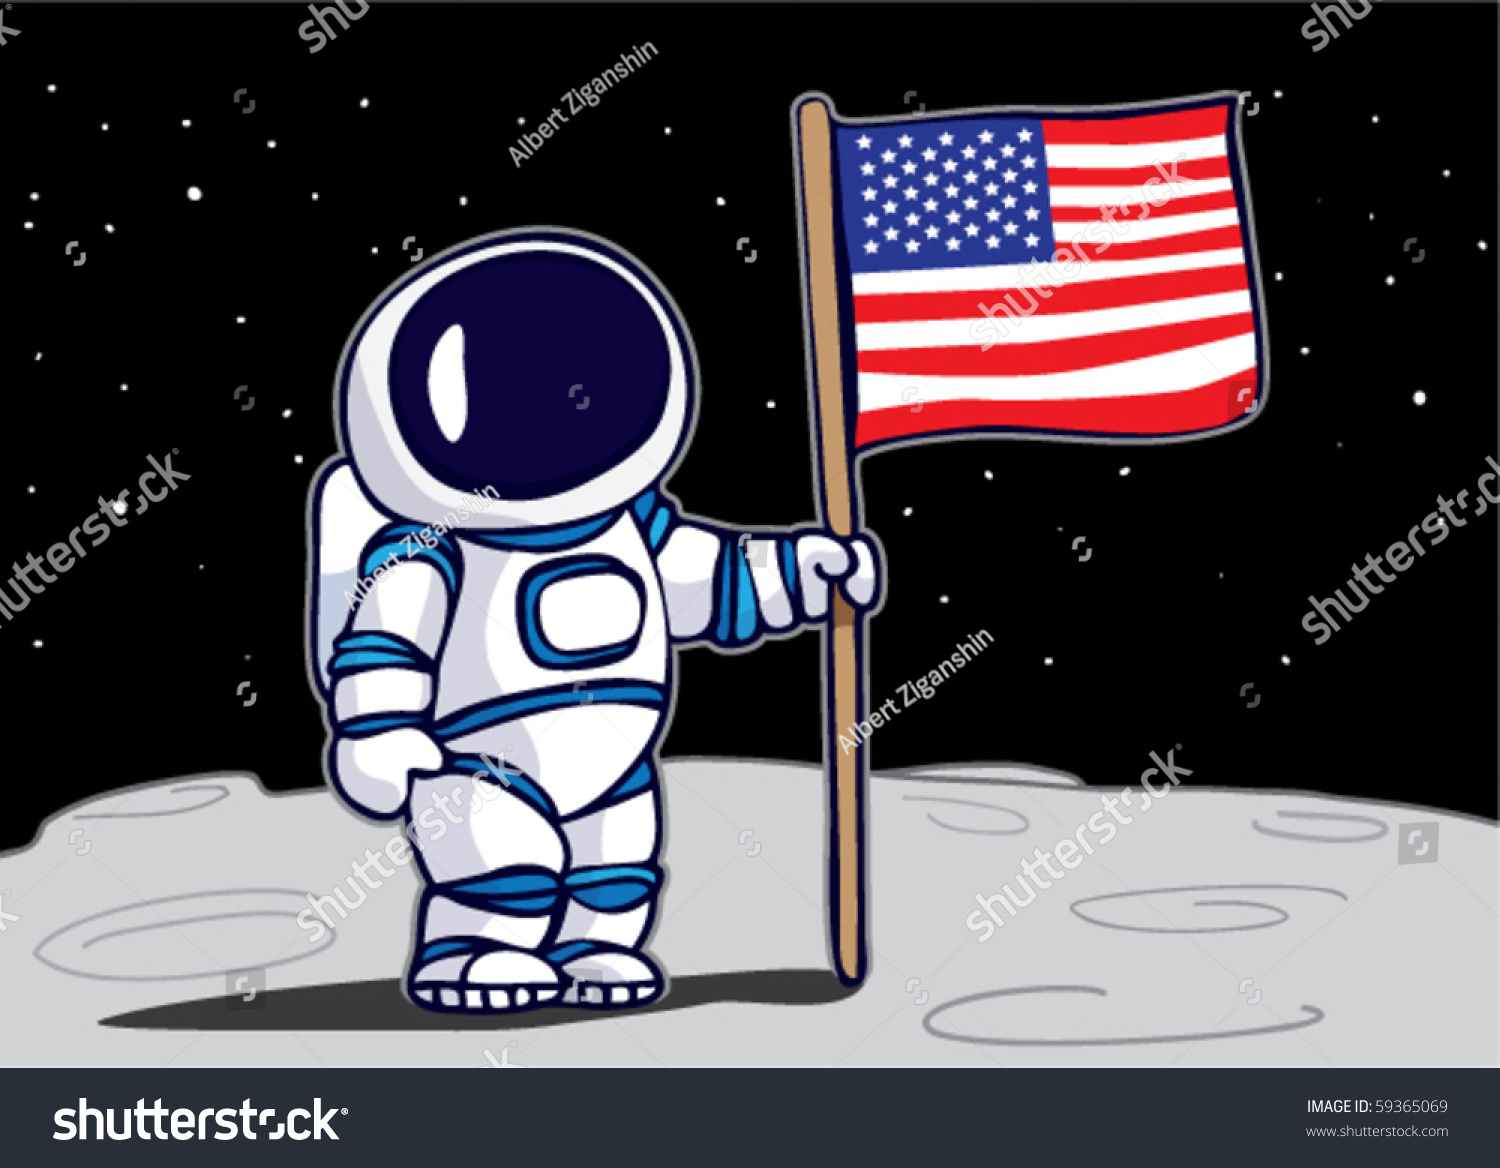 astronaut planting flag on moon stock vector 59365069